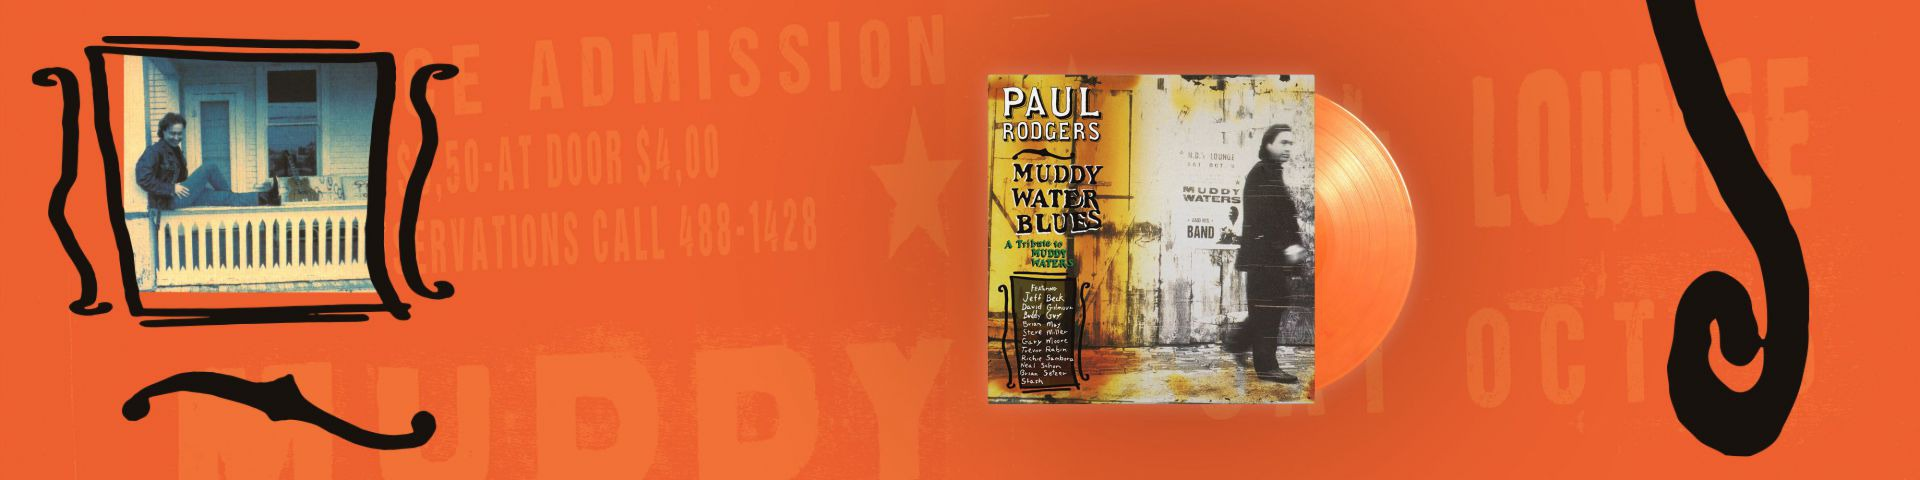 PAUL RODGERS - MUDDY WATER BLUES